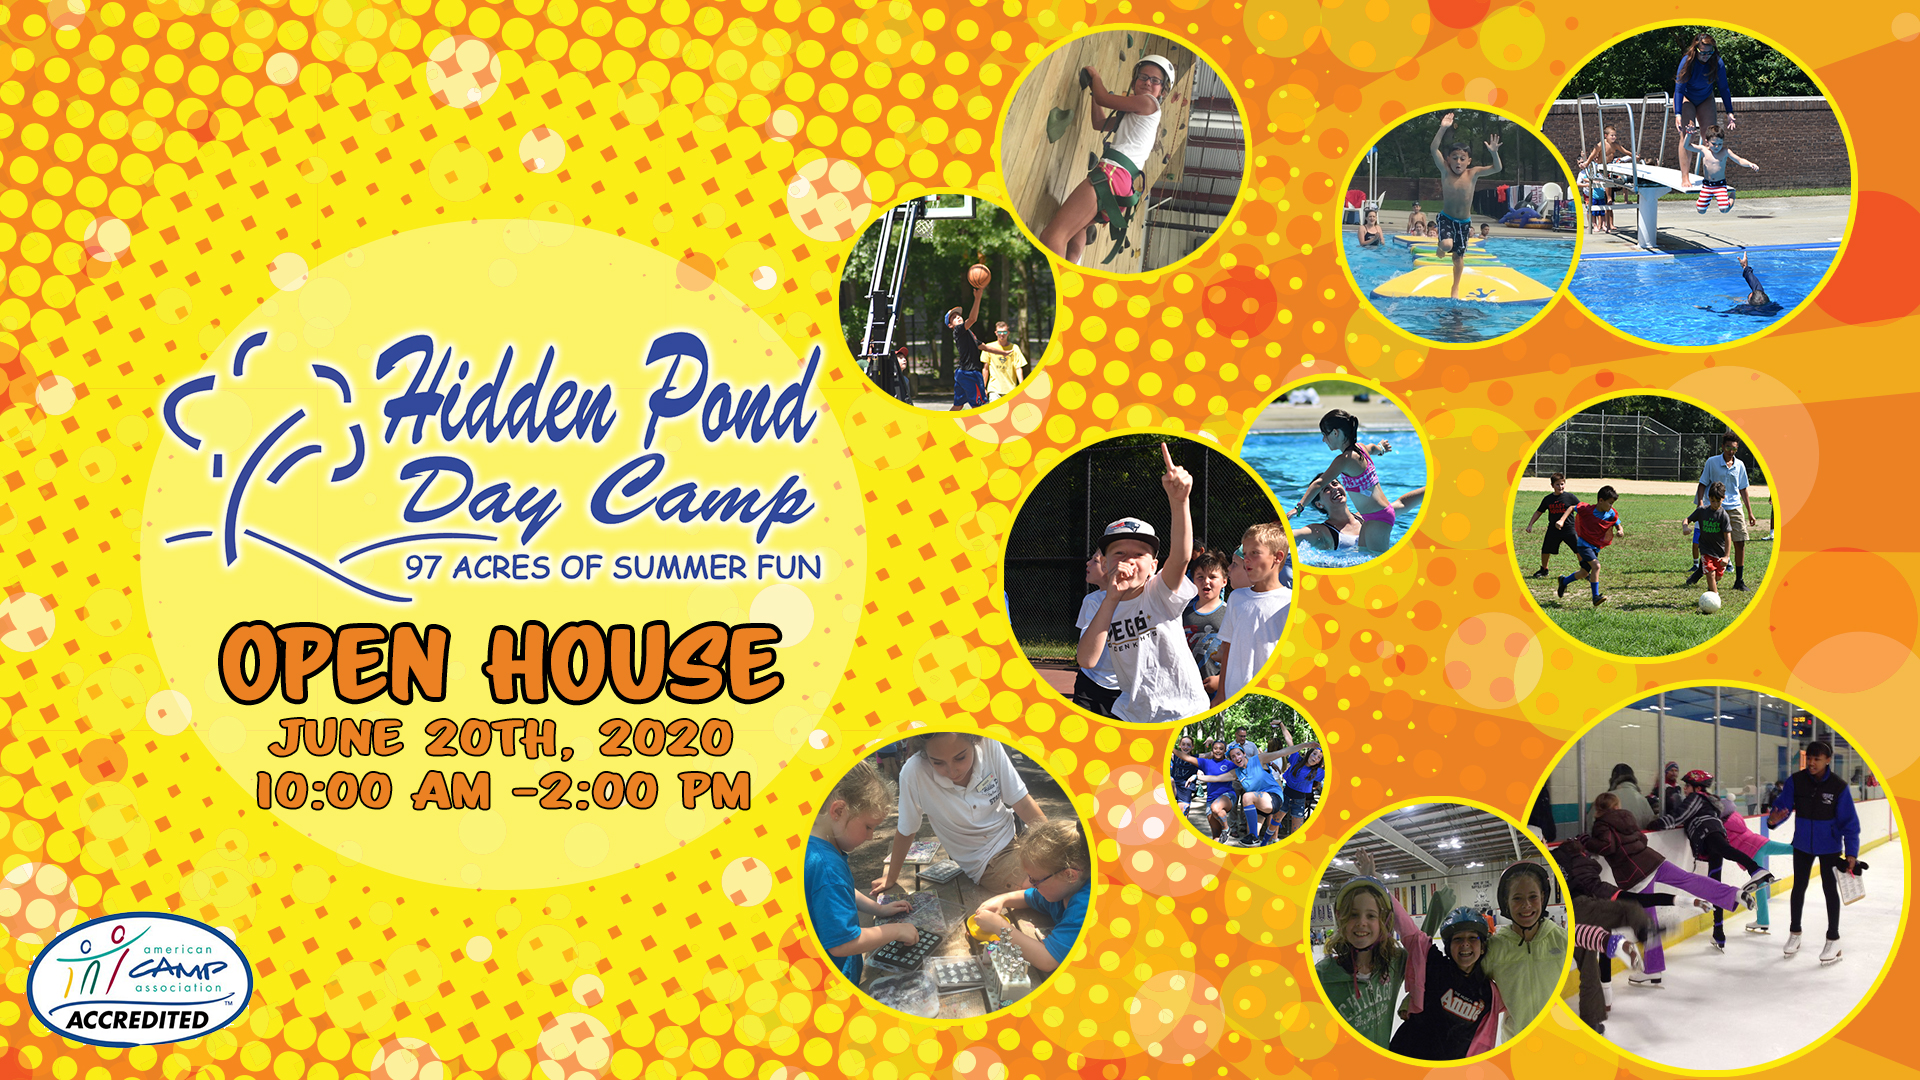 Hidden Pond Day Camp Open House at Hidden Pond Day Camp